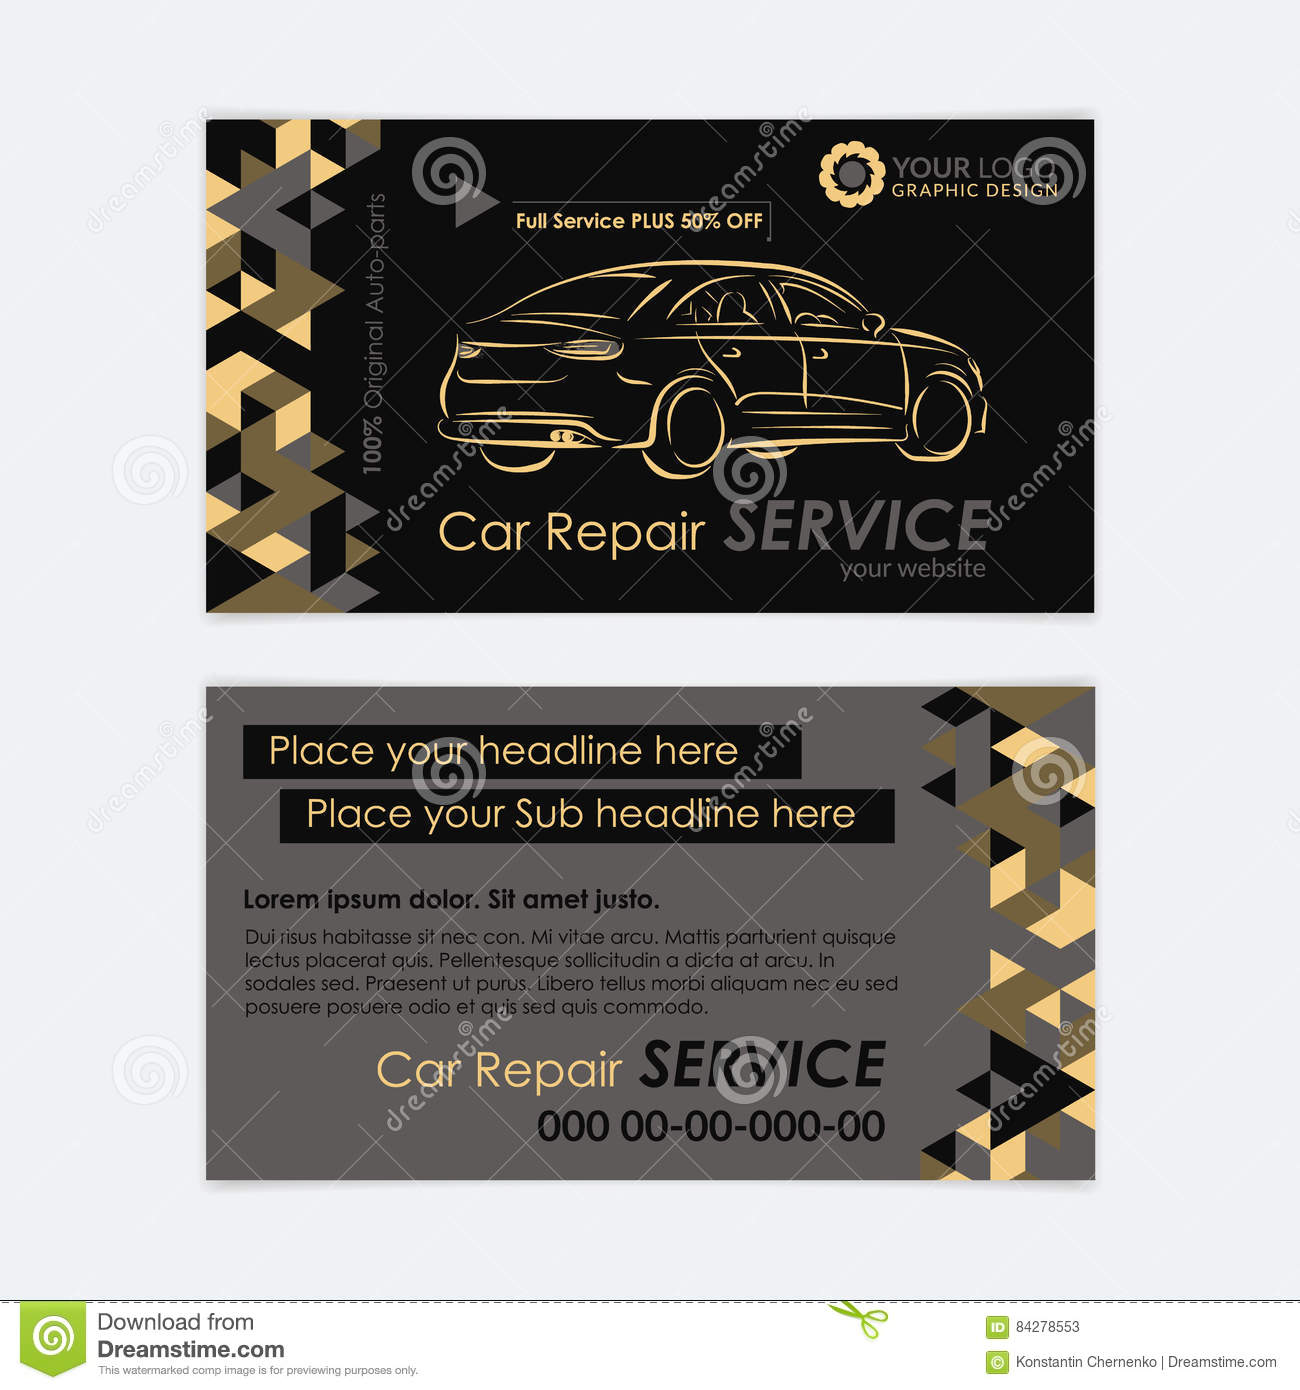 Automotive service business card template car diagnostics and automotive service business card template car diagnostics and transport repair create your own business cards wajeb Choice Image